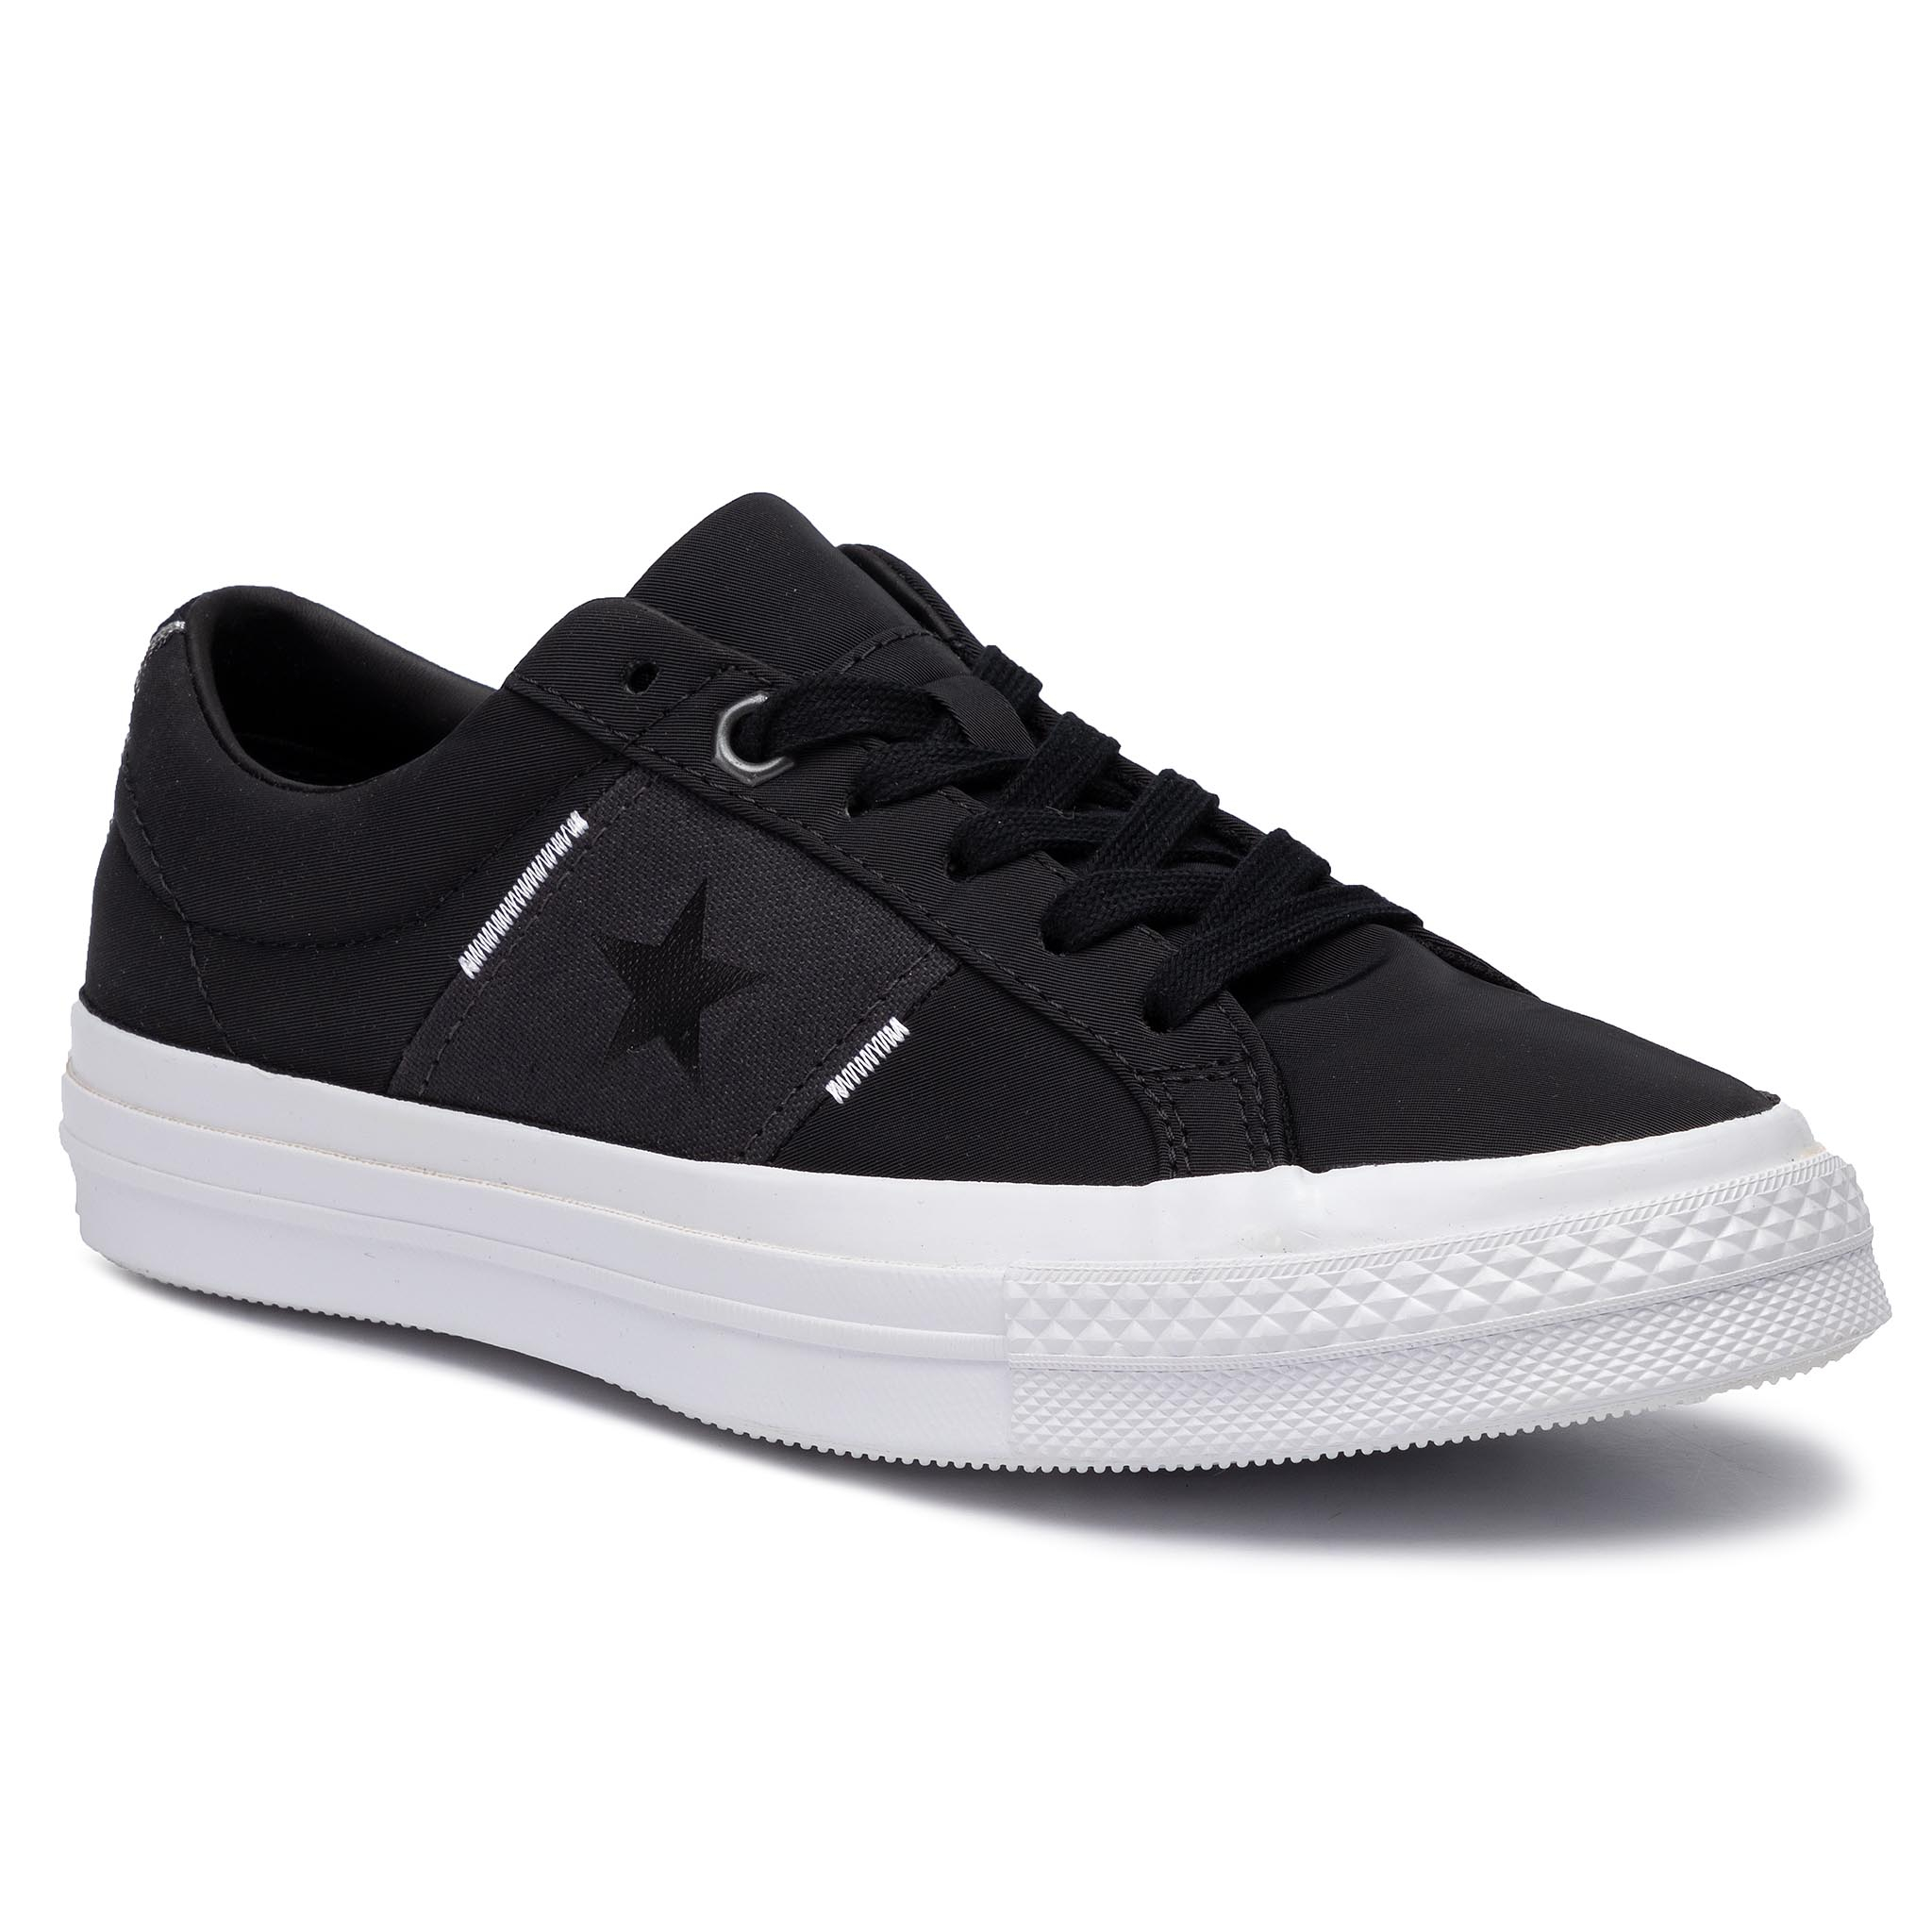 Teniși CONVERSE - One Star Ox 165059C Black/Almost Black/White